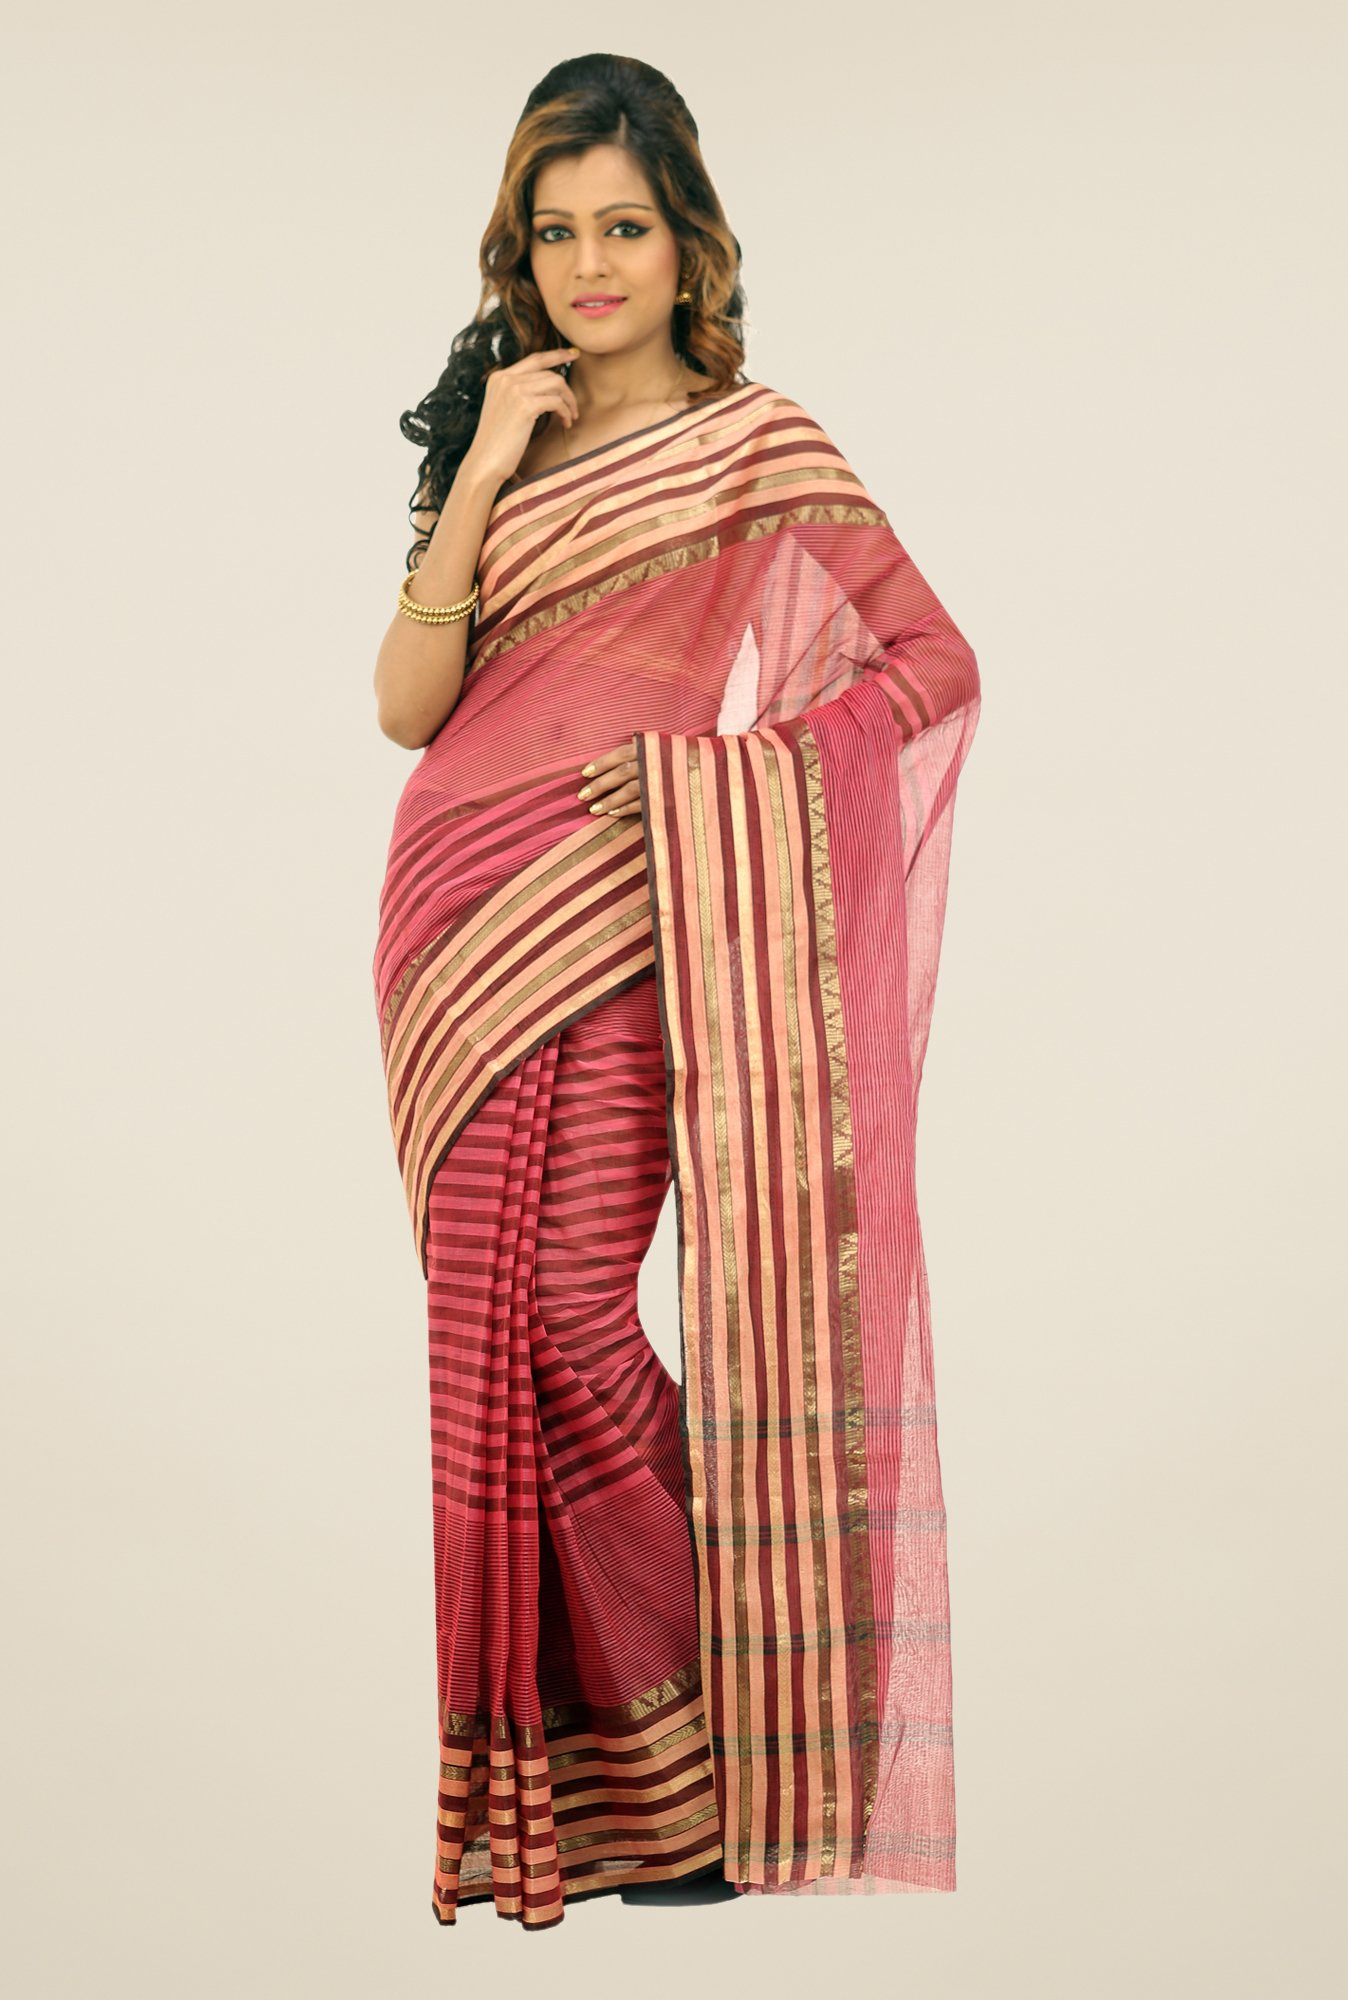 Bengal Handloom Maroon Striped Cotton Saree